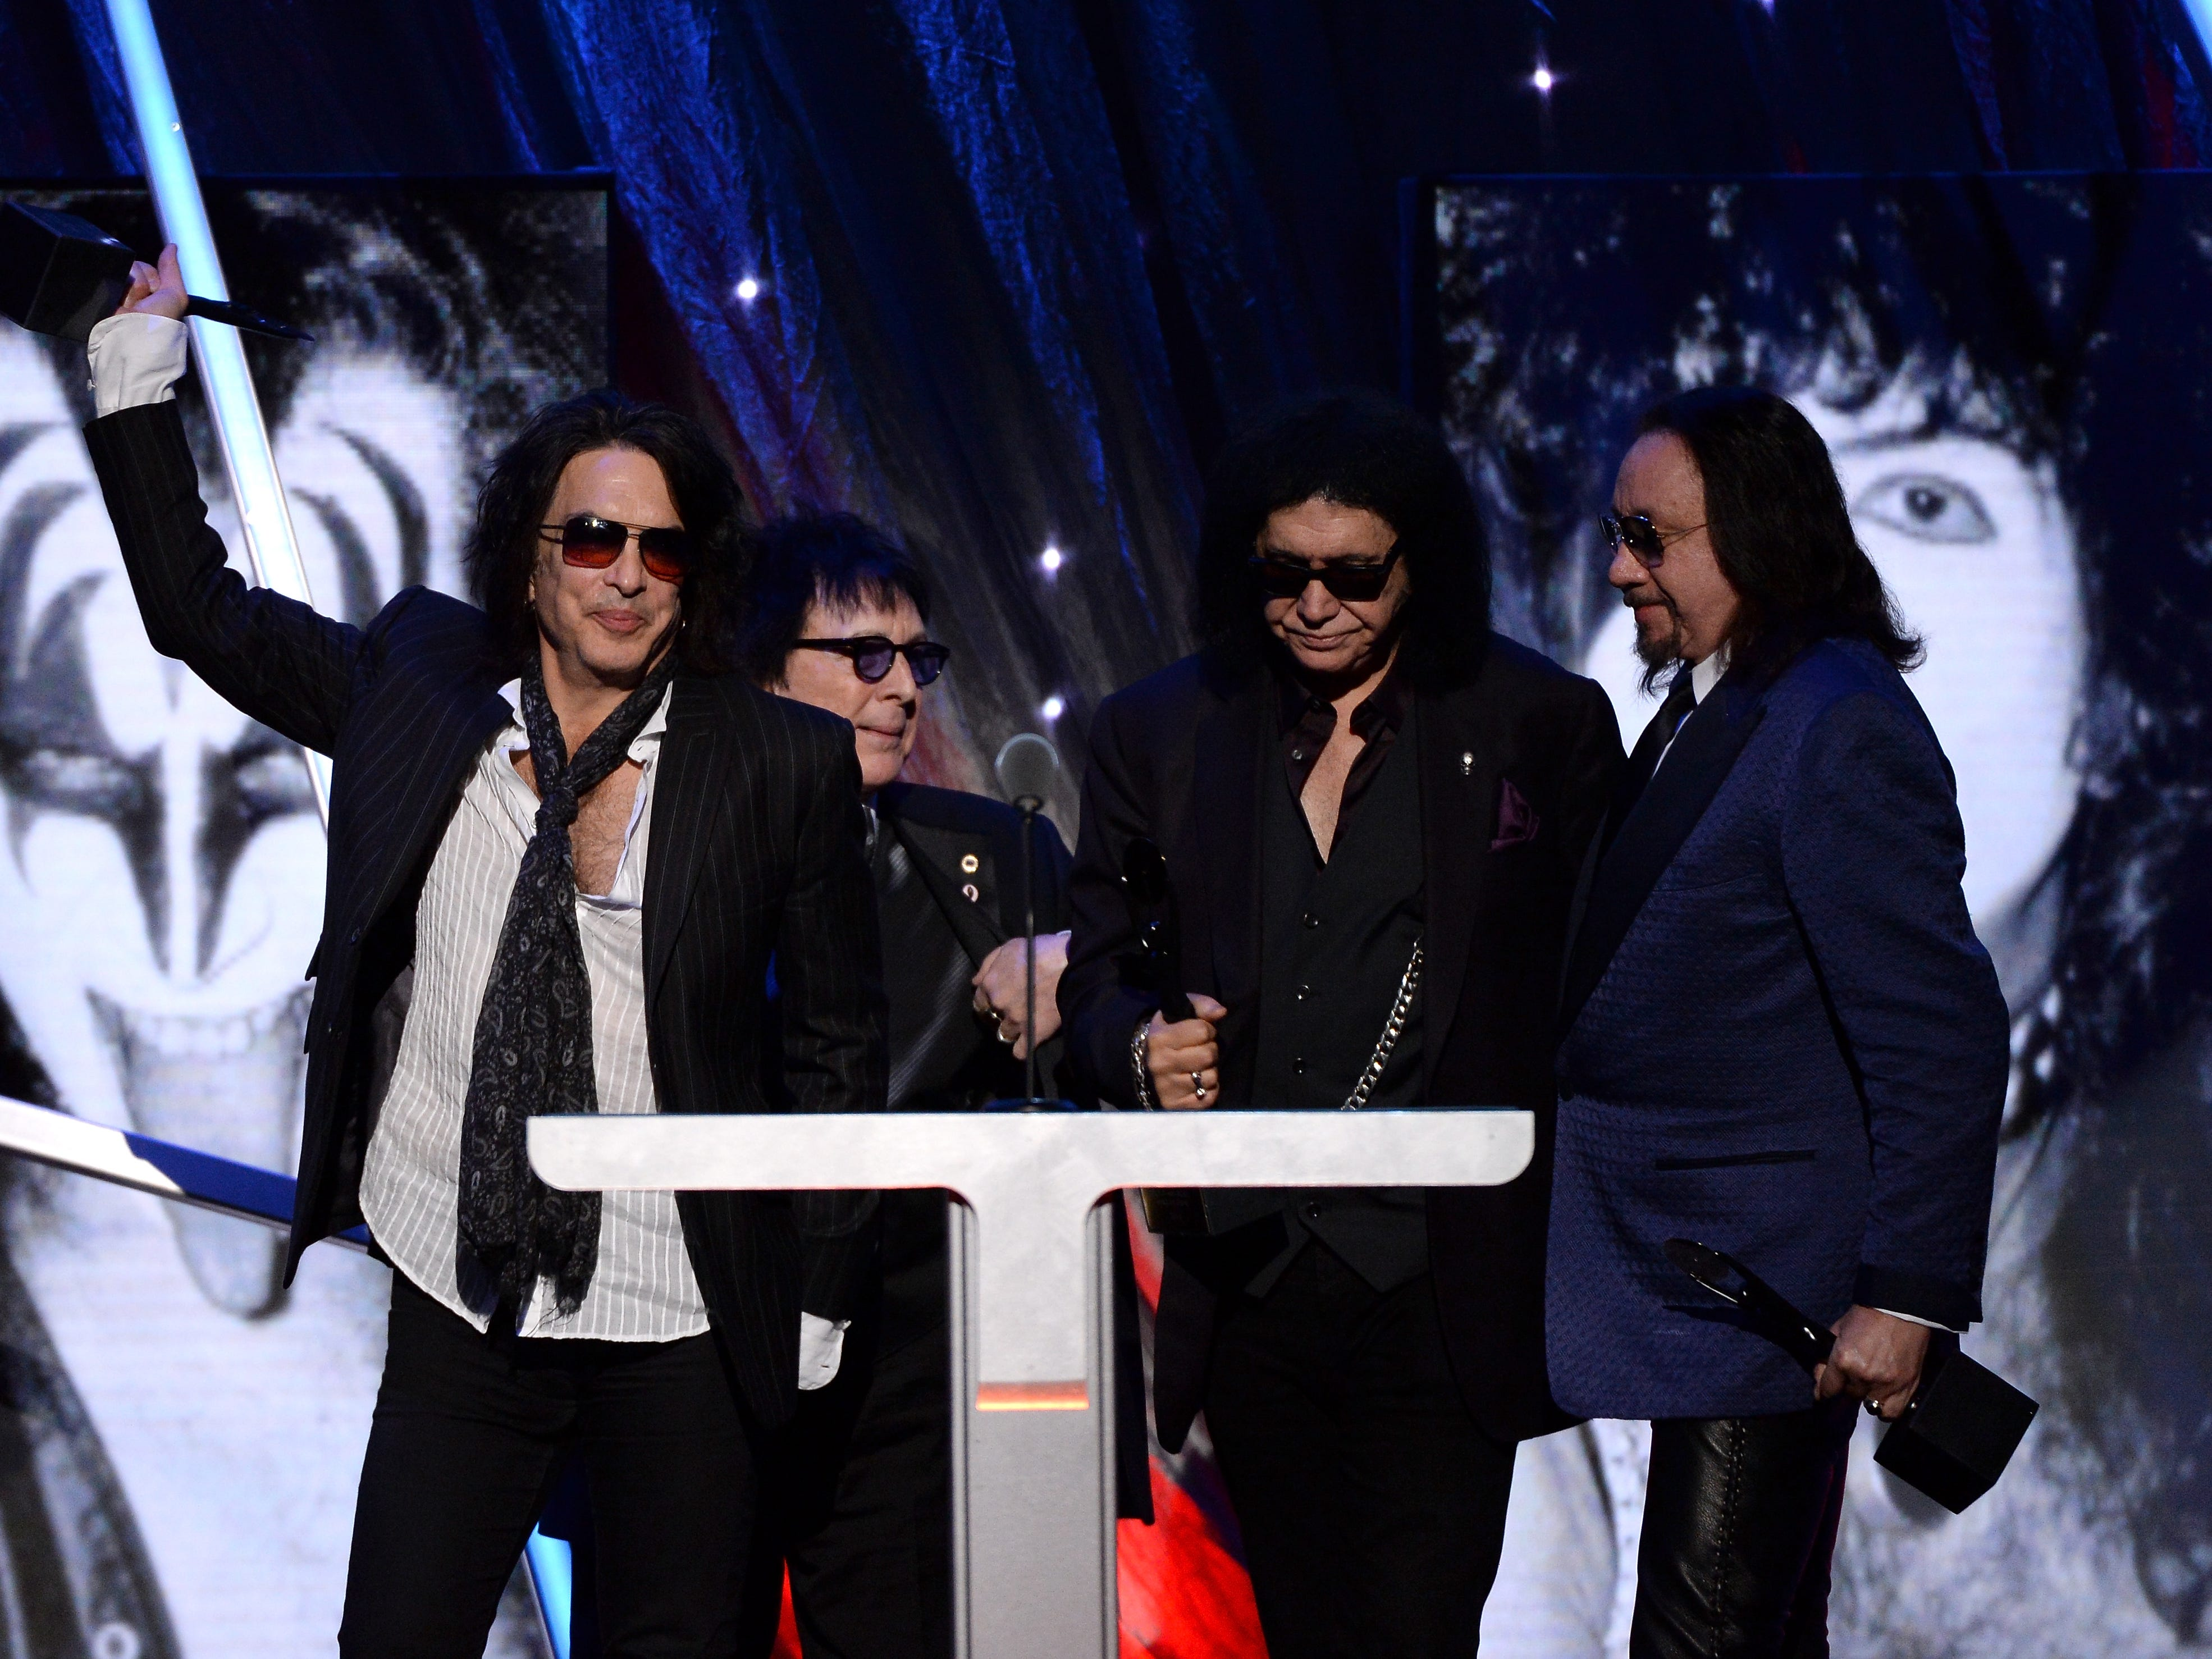 NEW YORK, NY - APRIL 10:  (L-R) Inductees Paul Stanley, Peter Criss, Gene Simmons and Ace Frehley of KISS speak onstage at the 29th Annual Rock And Roll Hall Of Fame Induction Ceremony at Barclays Center of Brooklyn on April 10, 2014 in New York City.  (Photo by Larry Busacca/Getty Images)